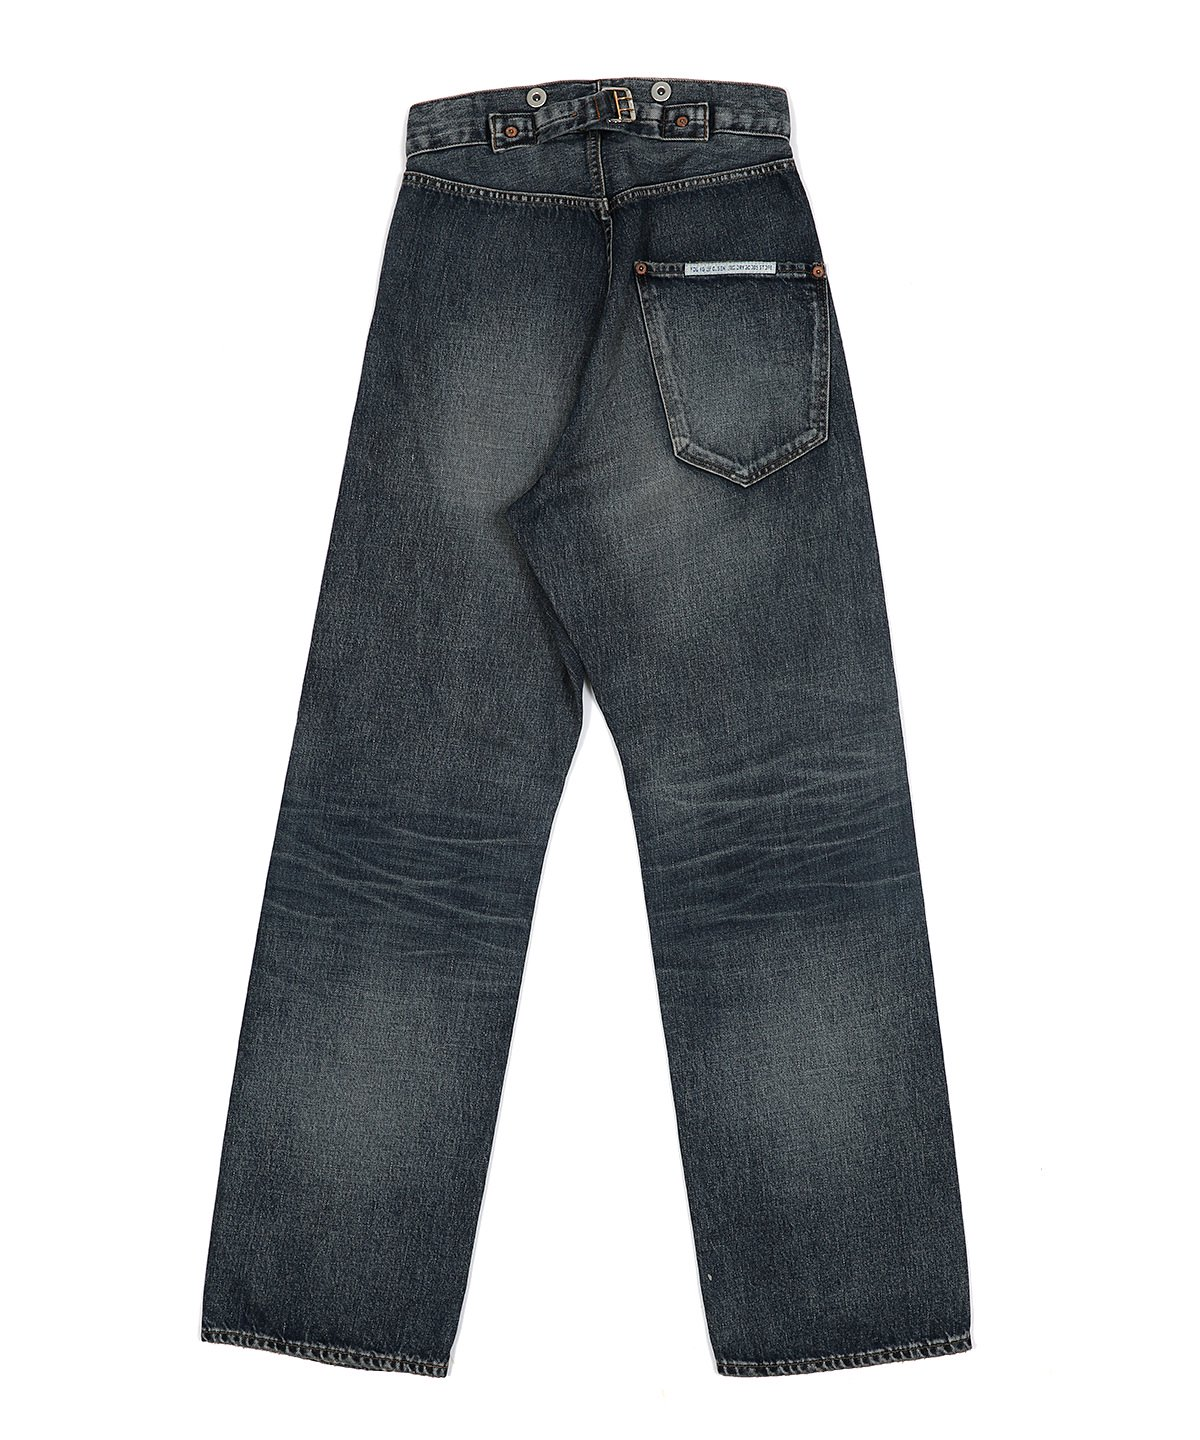 20'S WIDE JEANS (WASHED OUT)